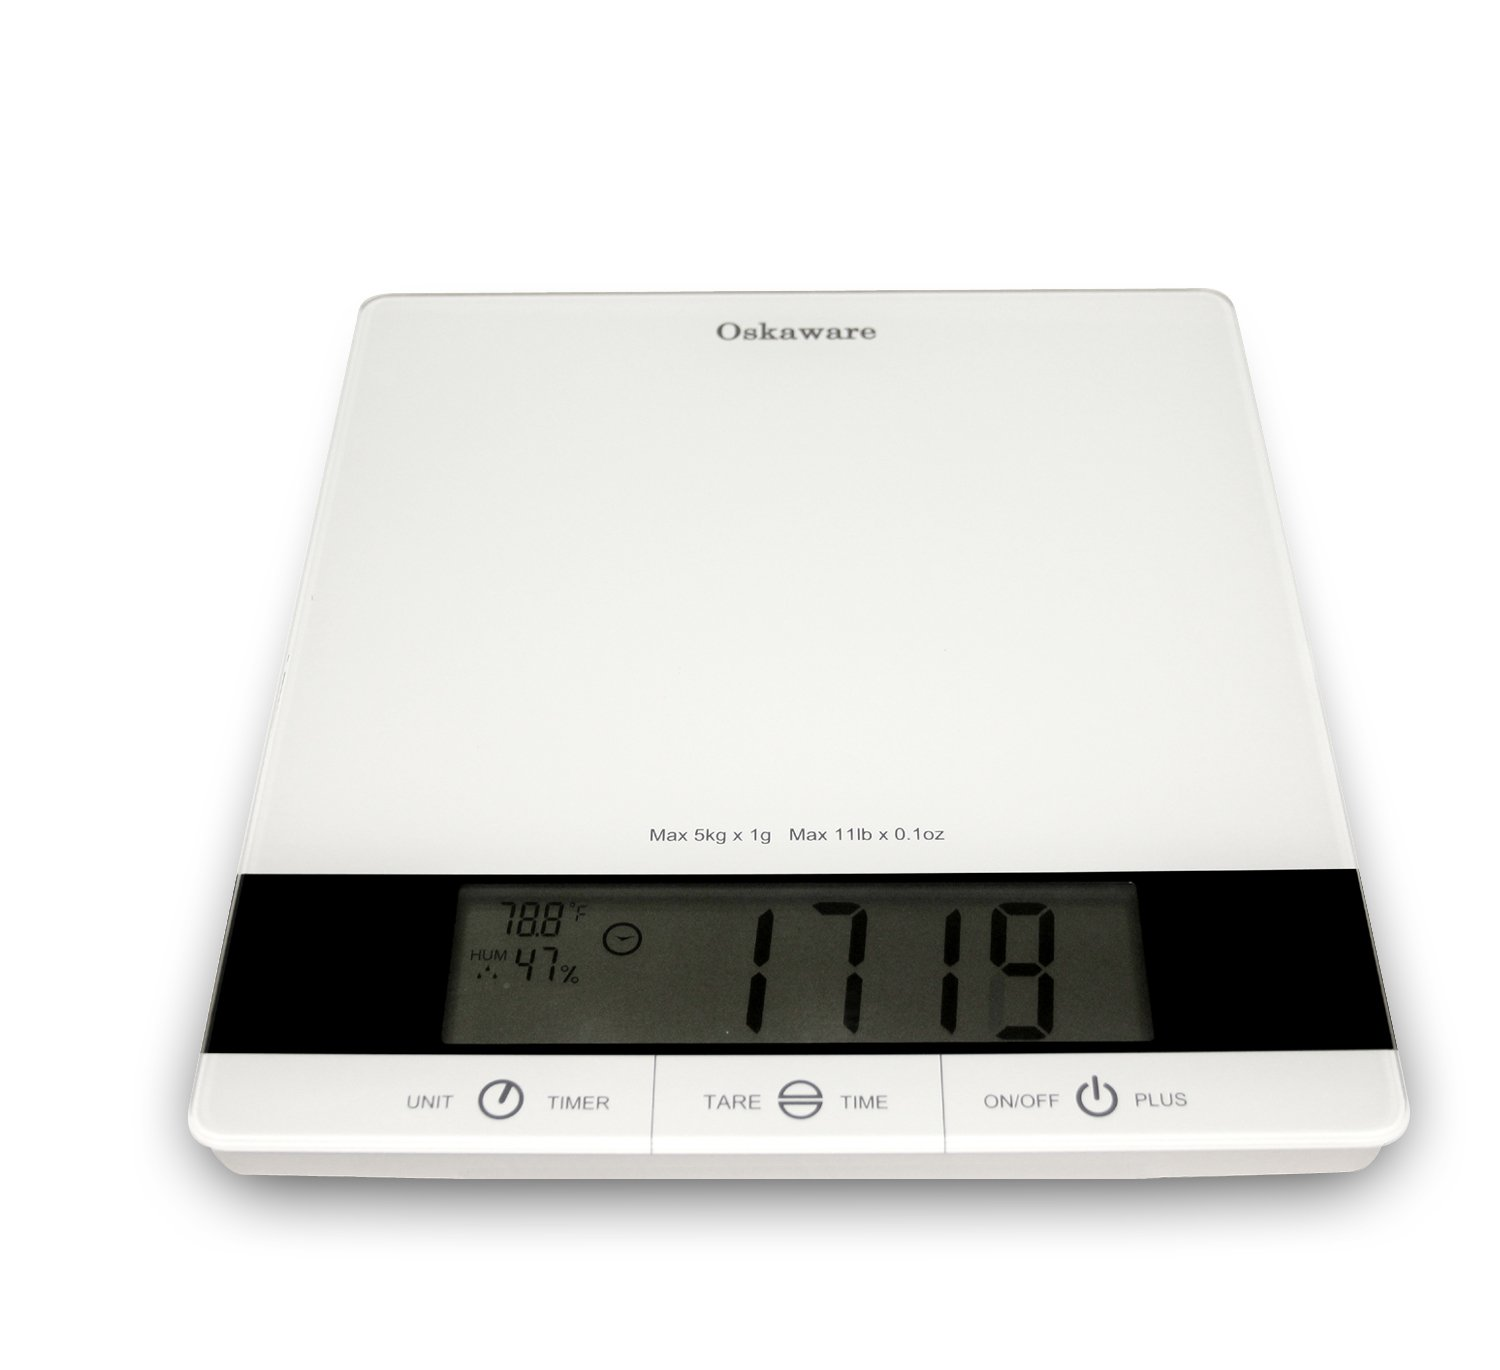 Oskaware High Quality Multifunctional Kitchen Food Scale